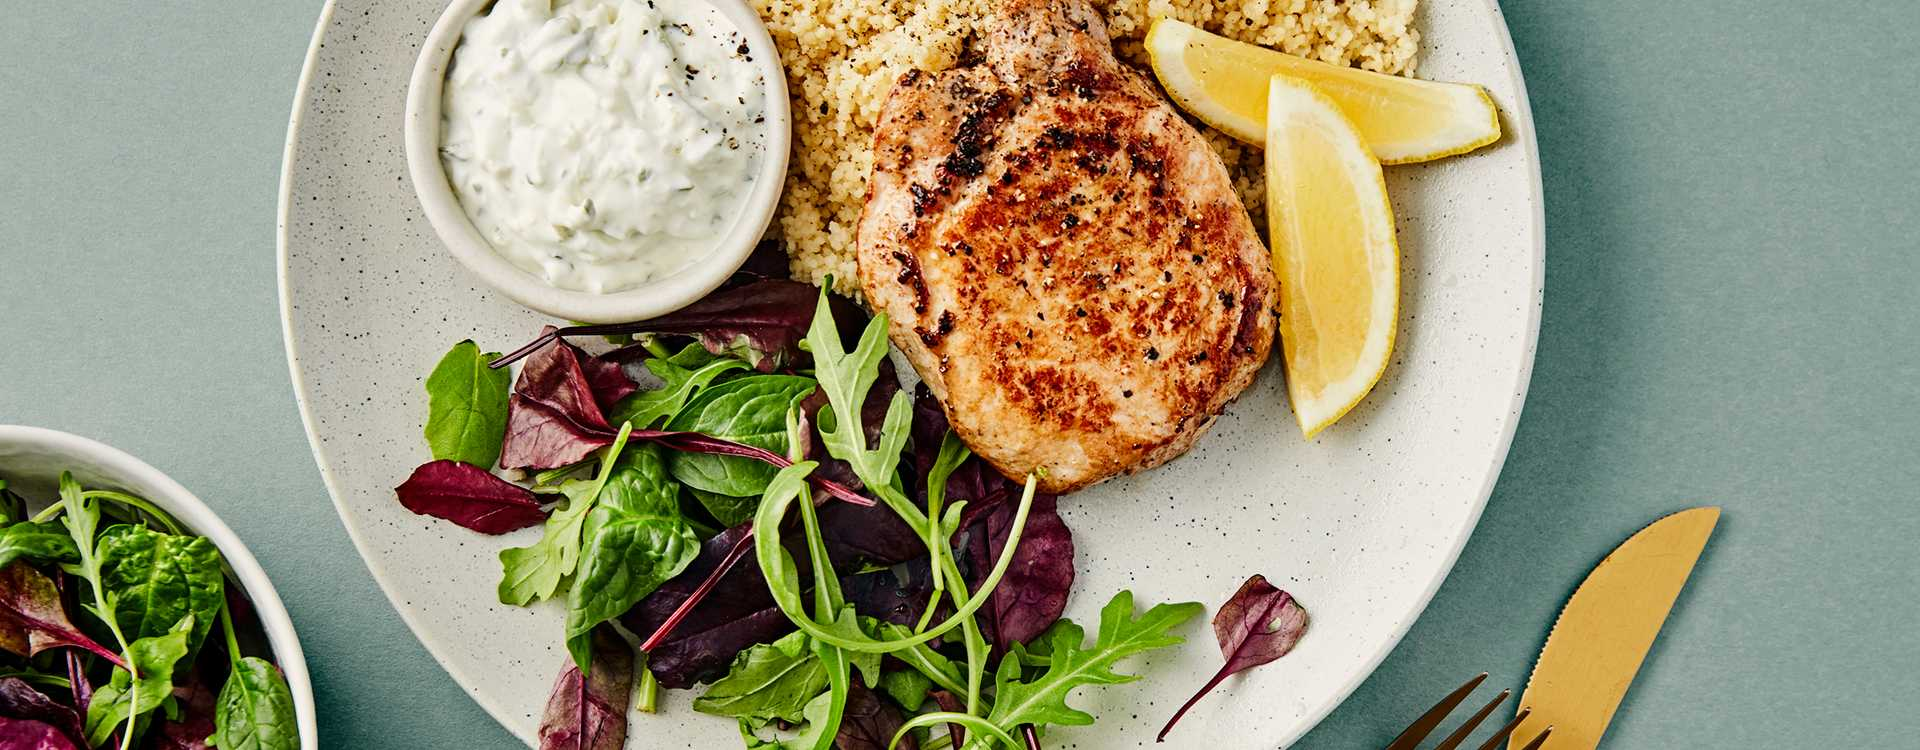 Svinefilet med couscoussalat og tzatziki